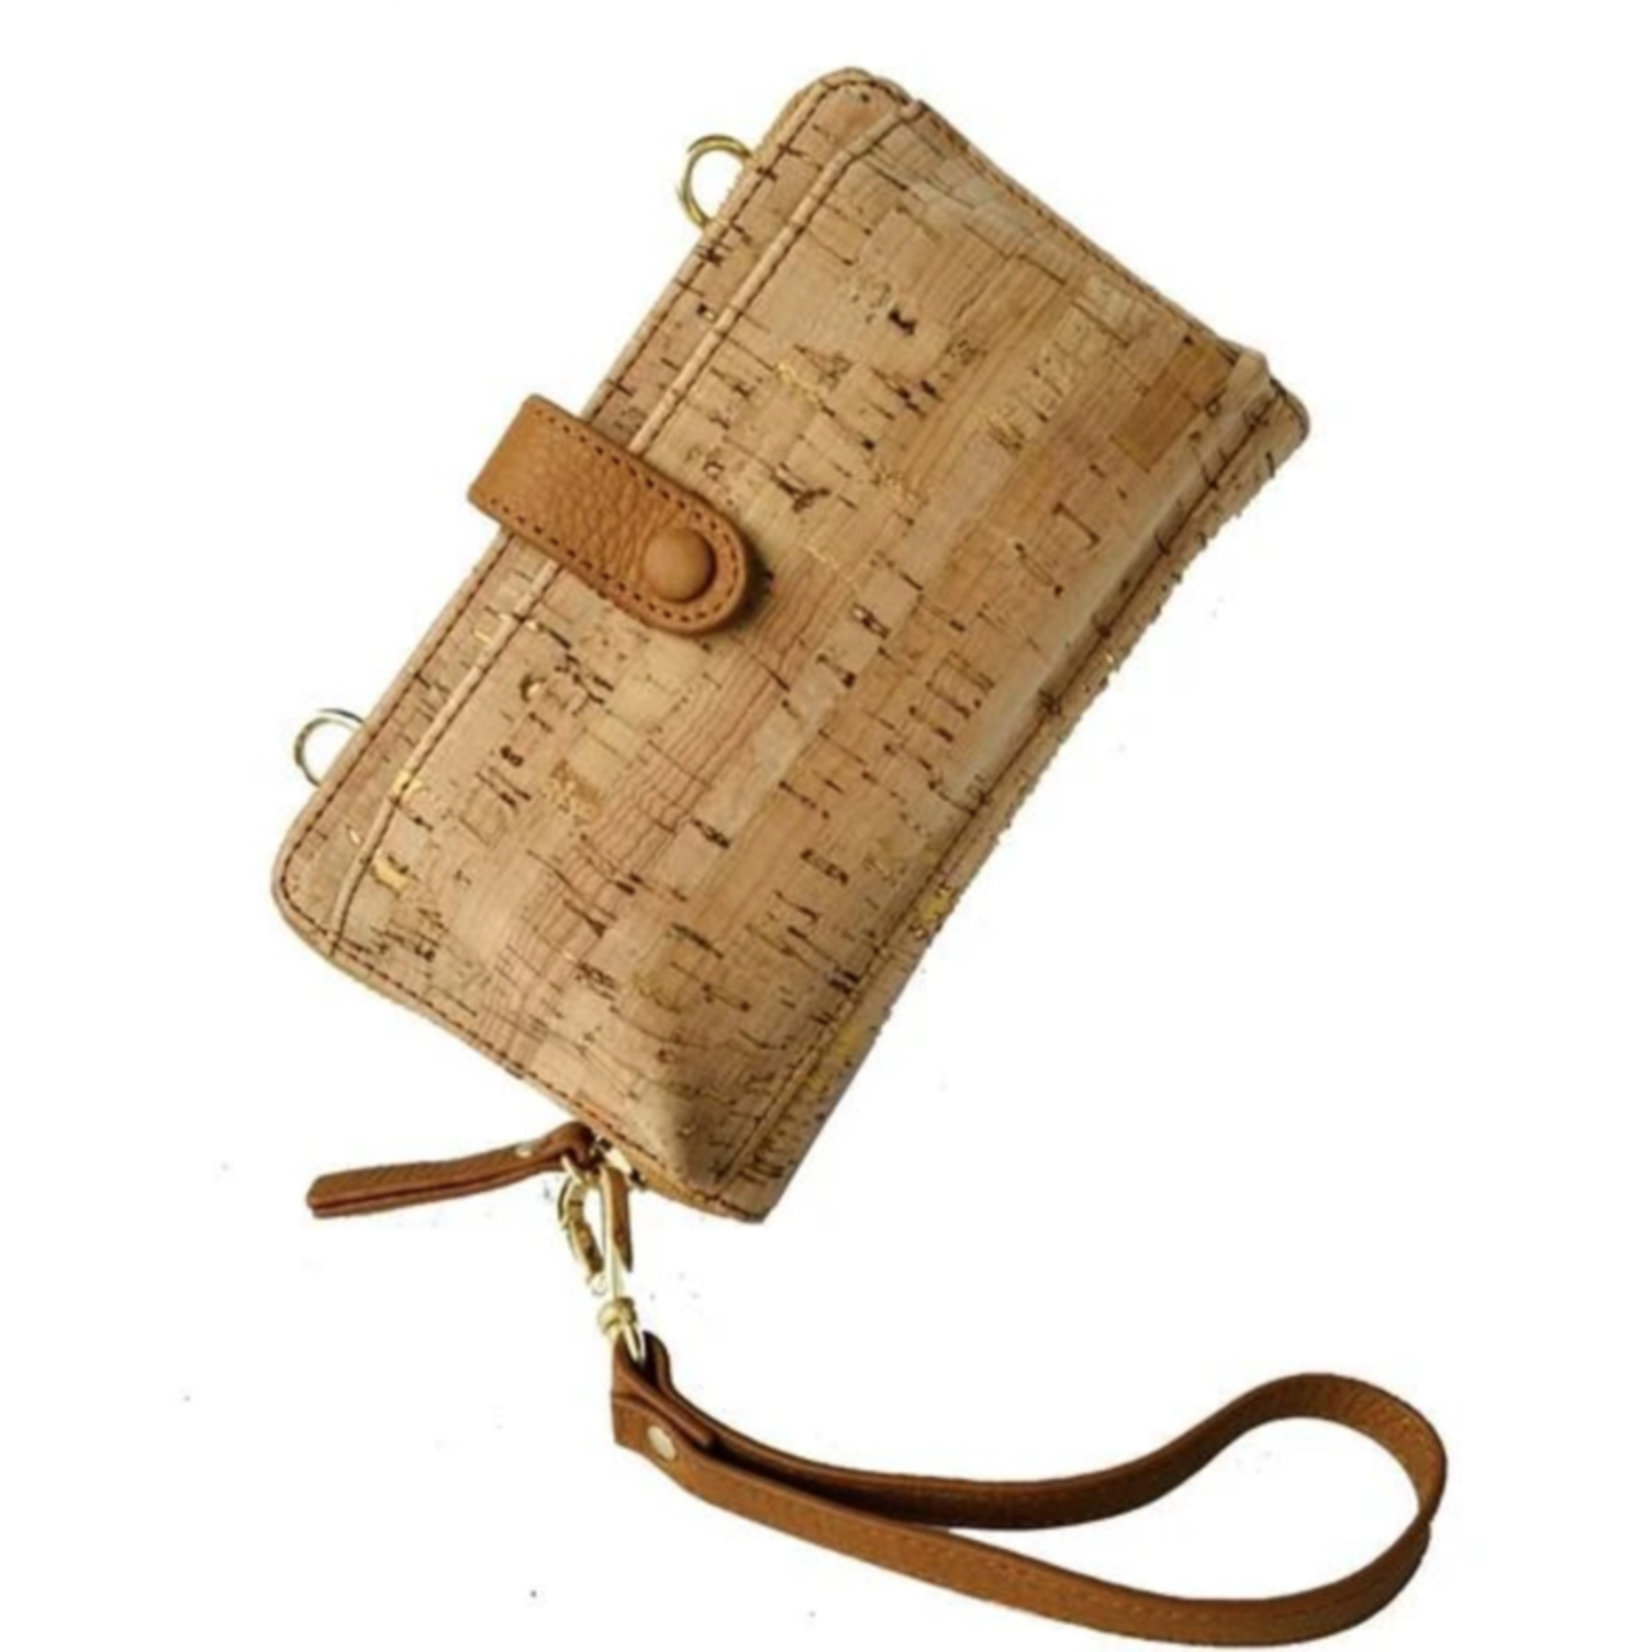 Queork Bamboo Cork Wallet w/ Gold Hardware and Leather Trim